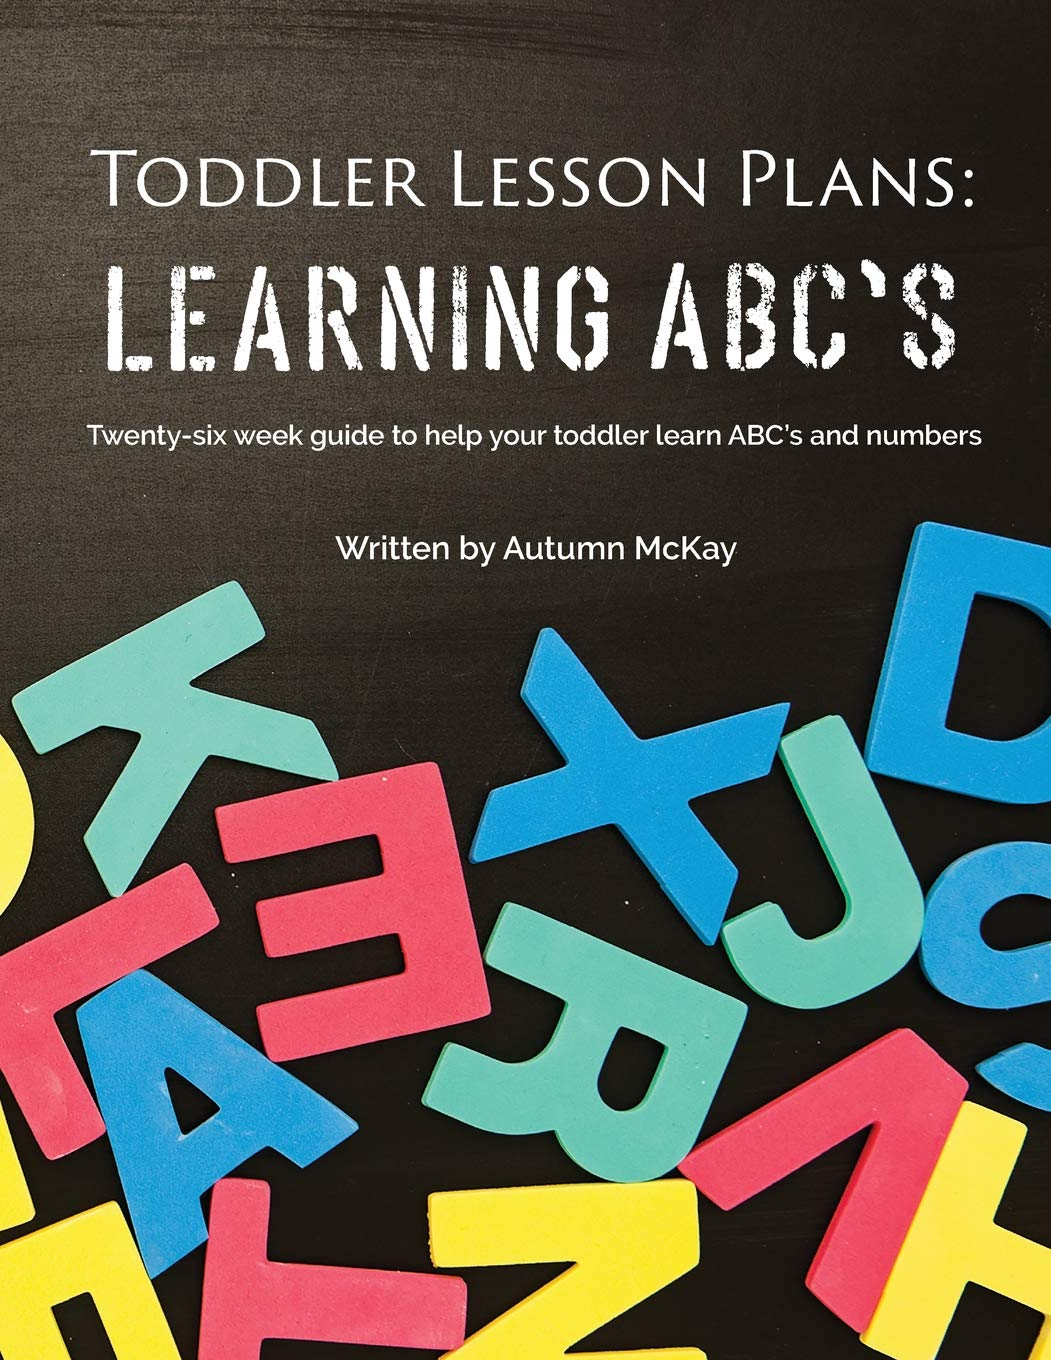 Toddler Lesson Plans: Learning ABC's: Twenty-six week guide